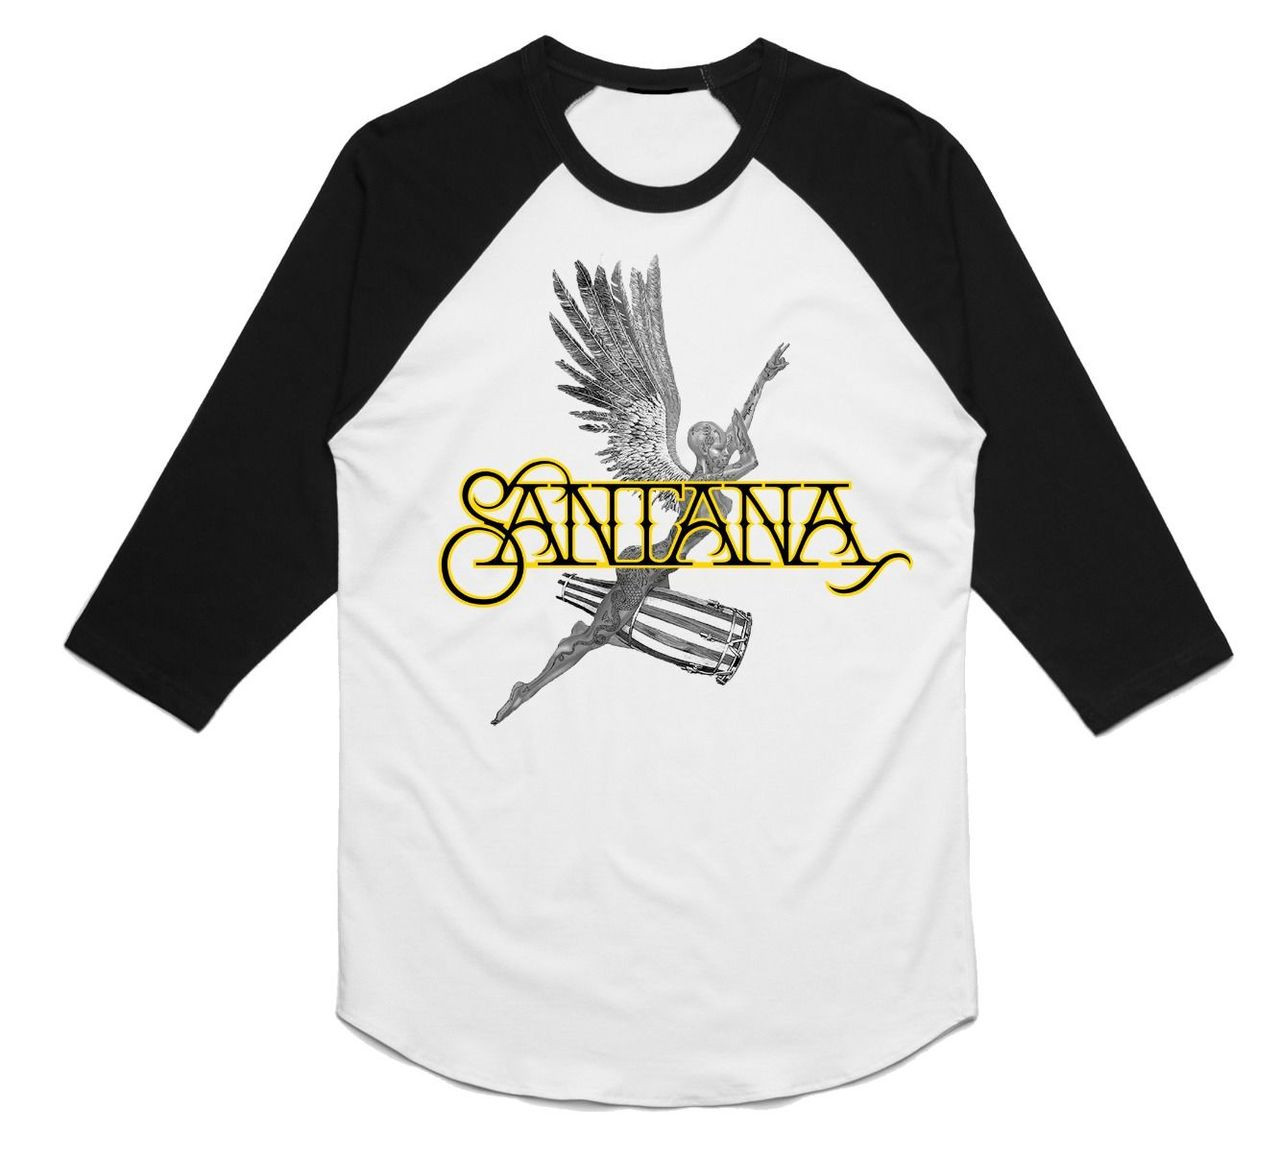 0a32ba256 Santana Angel Raglan T-shirt | More vintage-styled Blues and Rock from  OldSchoolTees.com